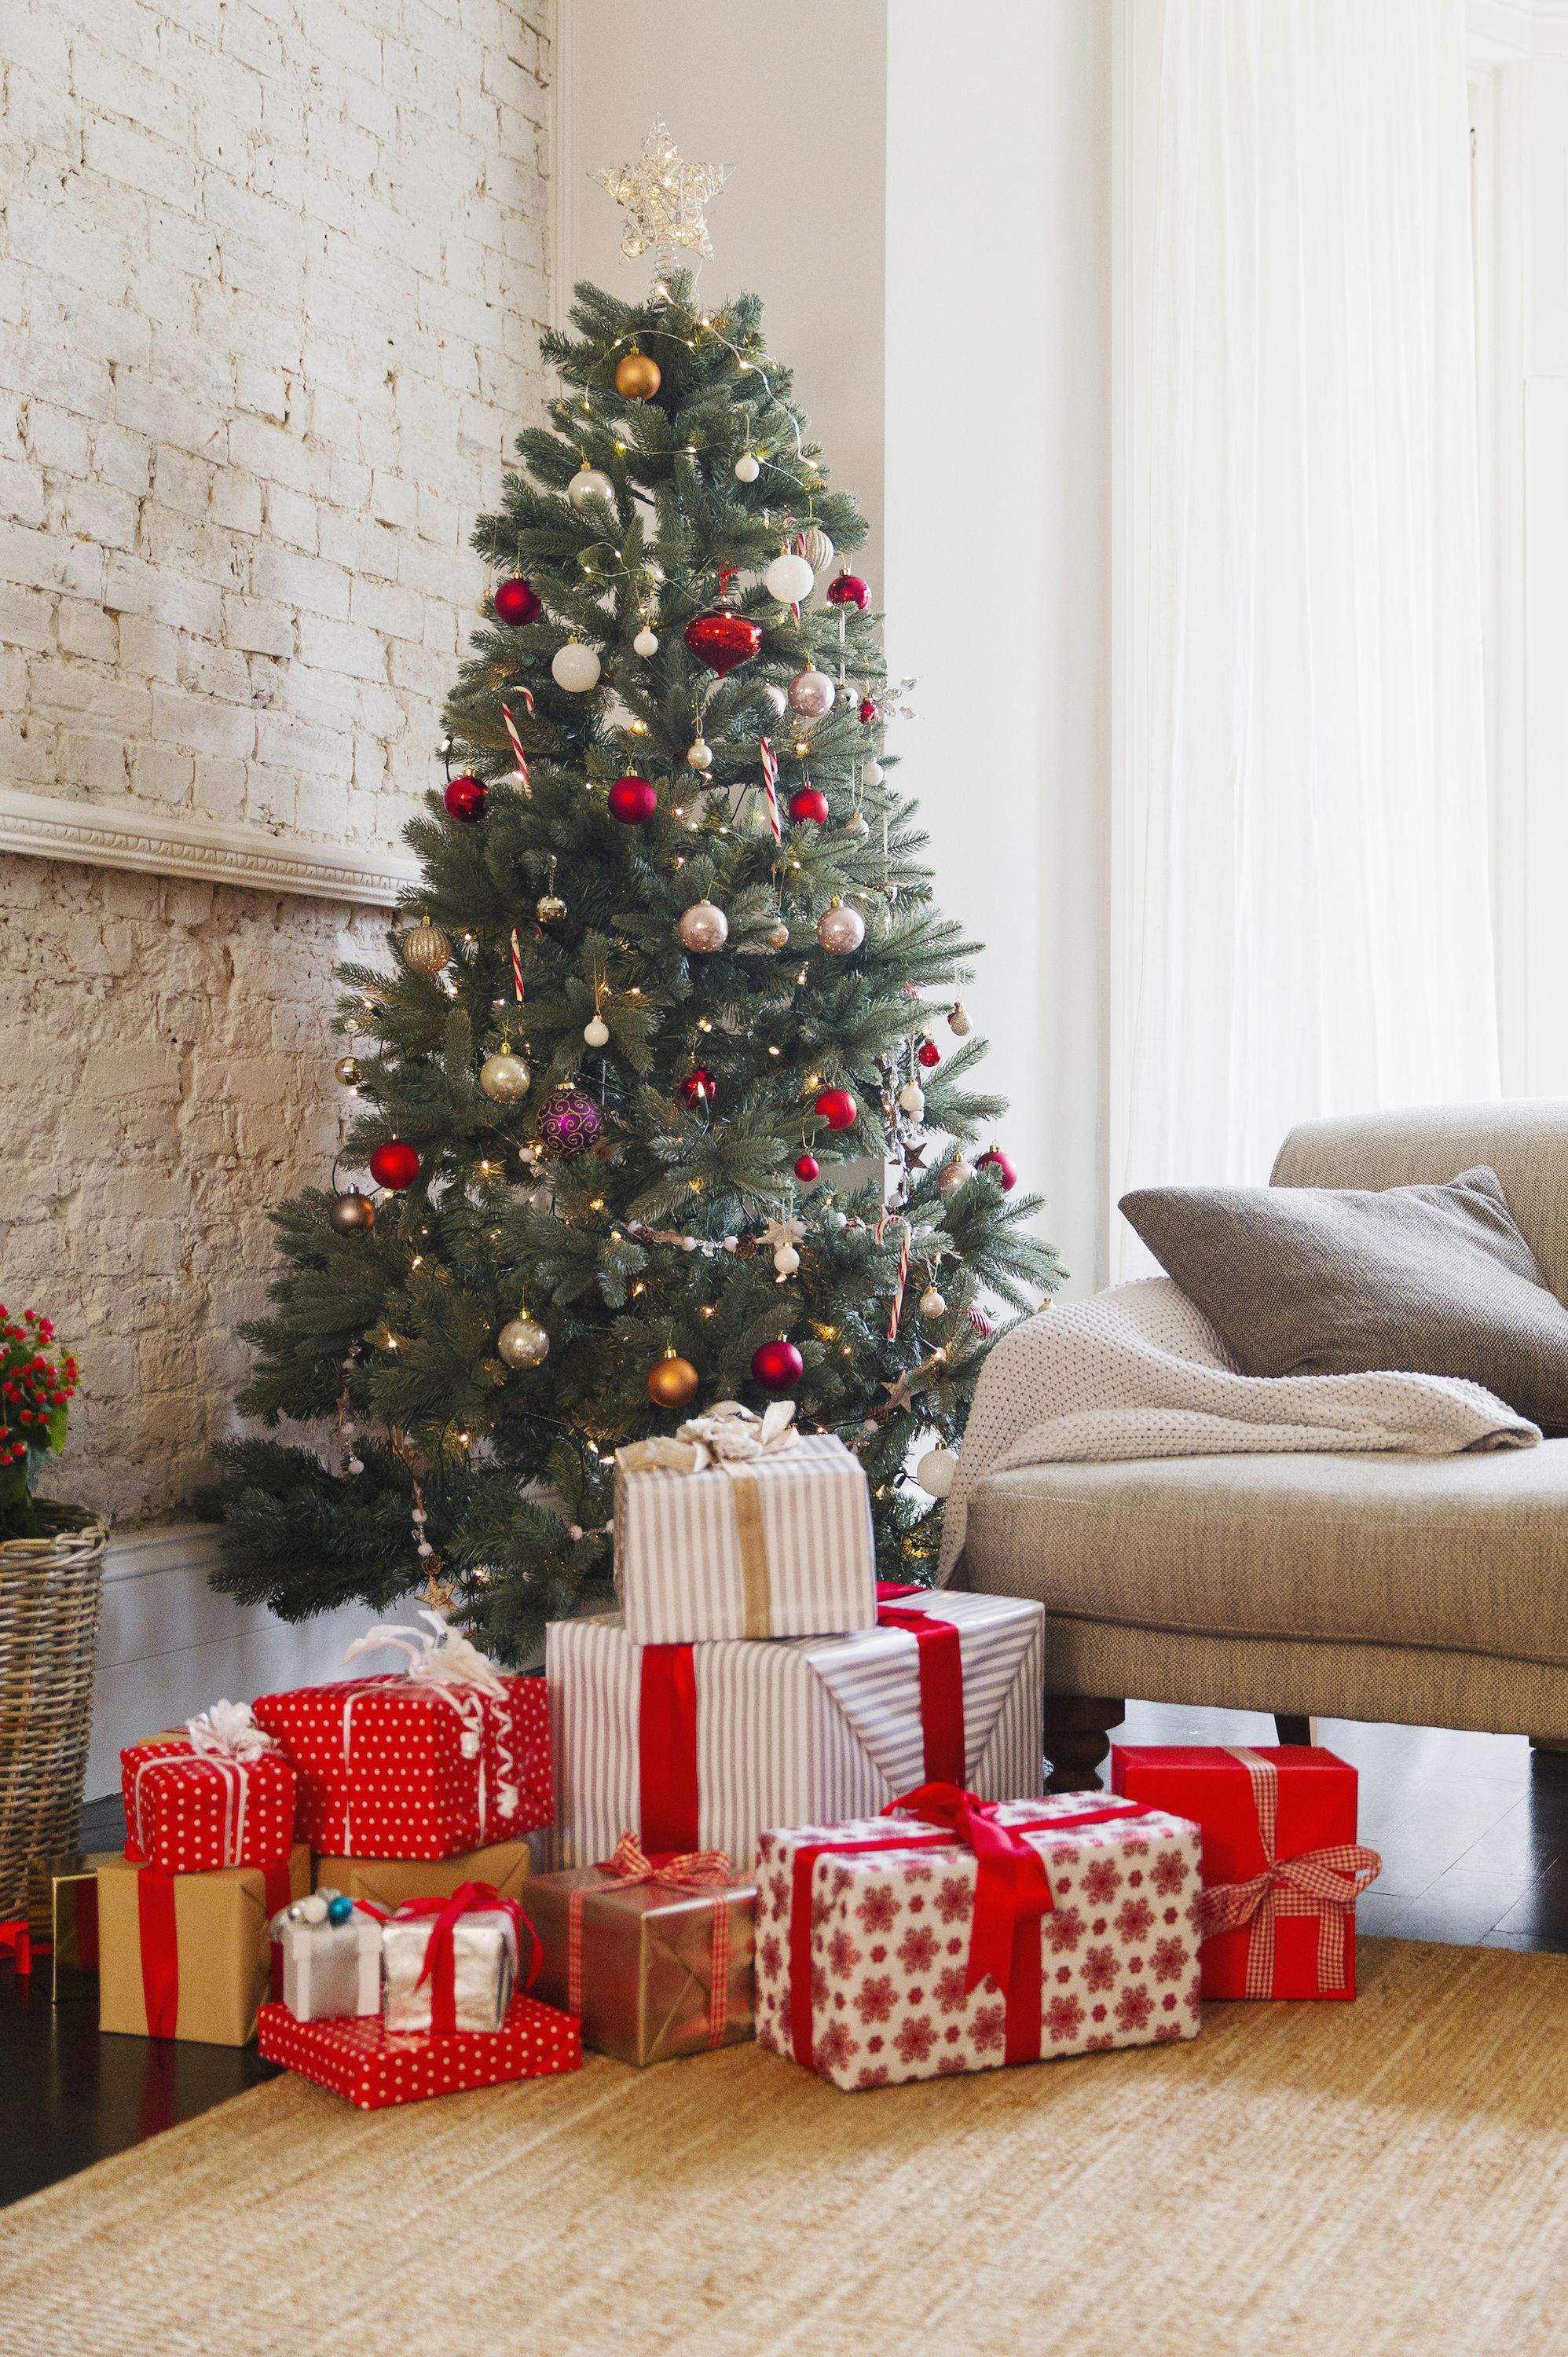 December Baby Facts - Facts About December Babies